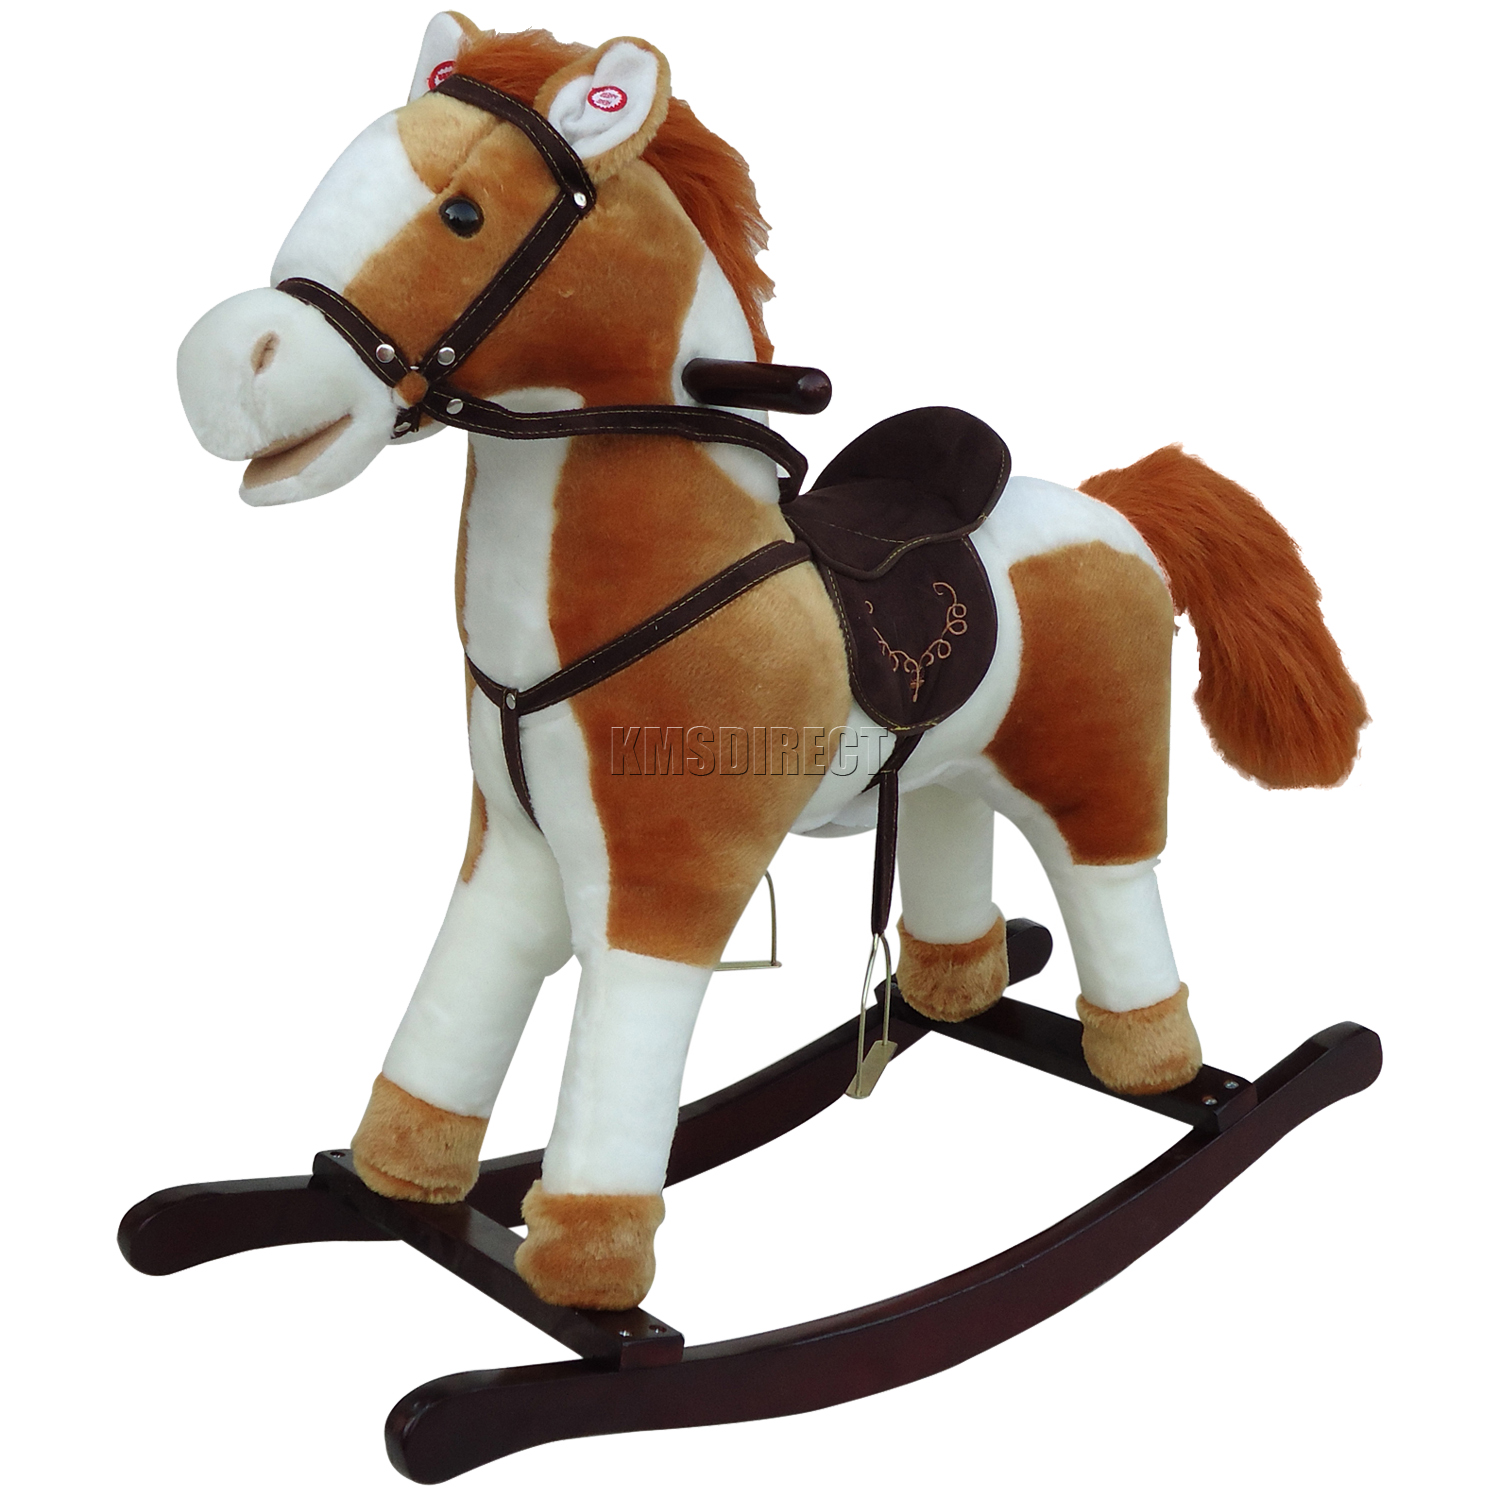 new children rocking horse with sound great traditional toy small  - newchildrenrockinghorsewithsoundgreattraditional